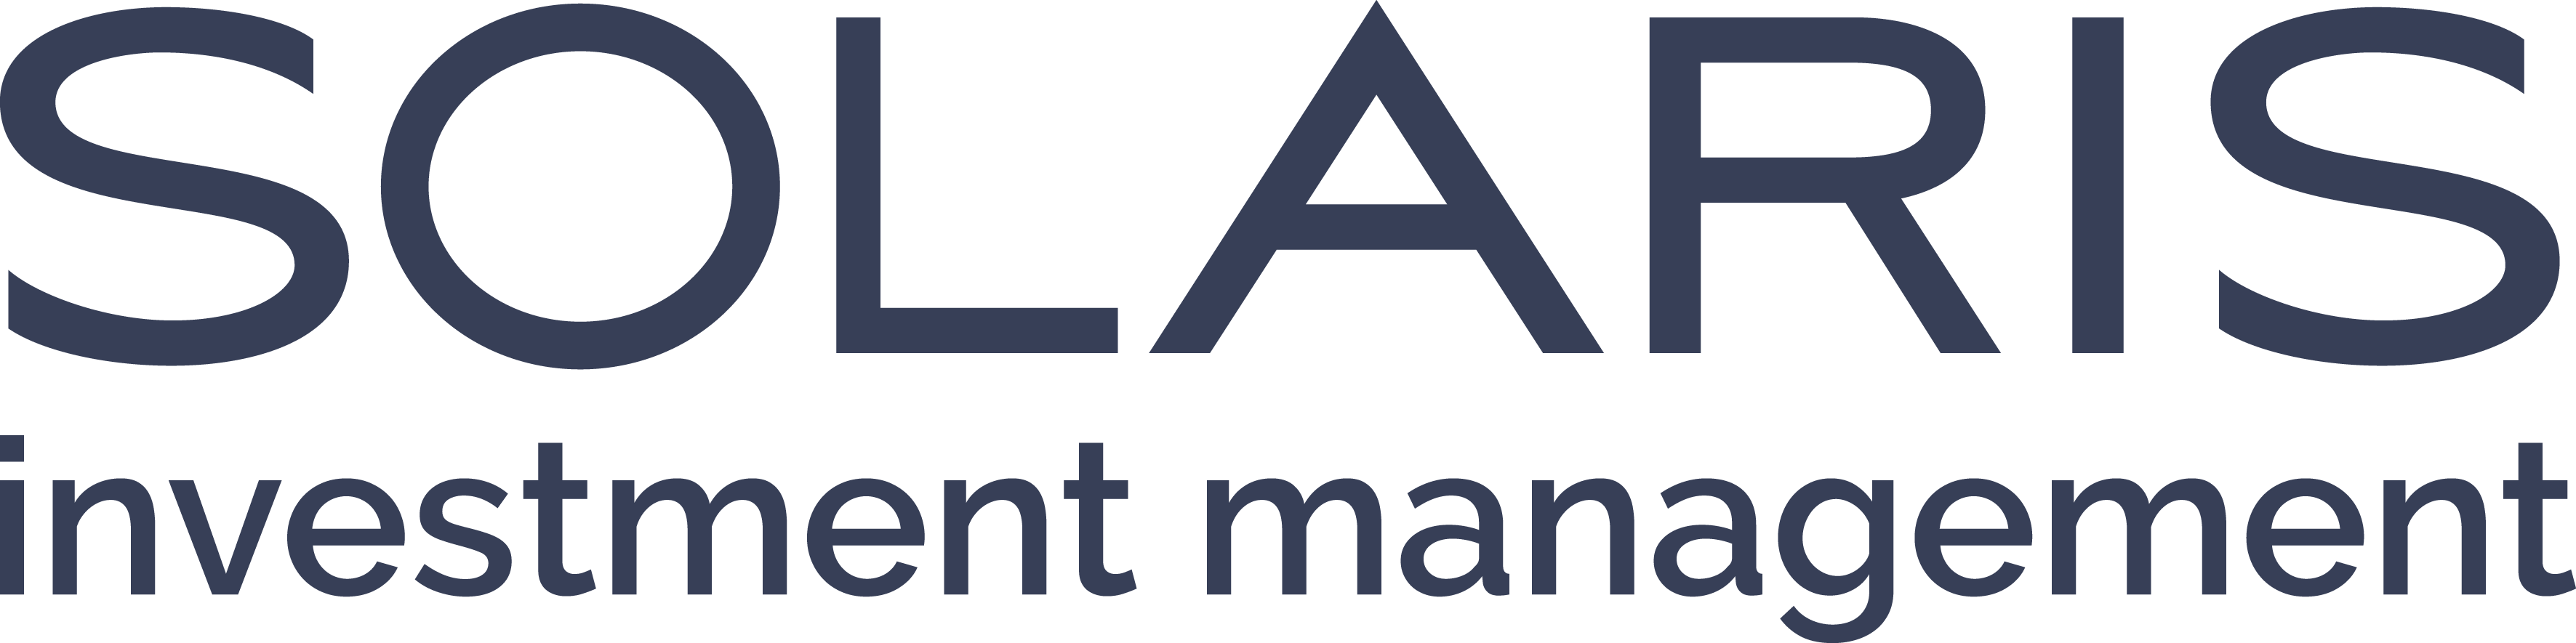 Logo of Solaris investment manager